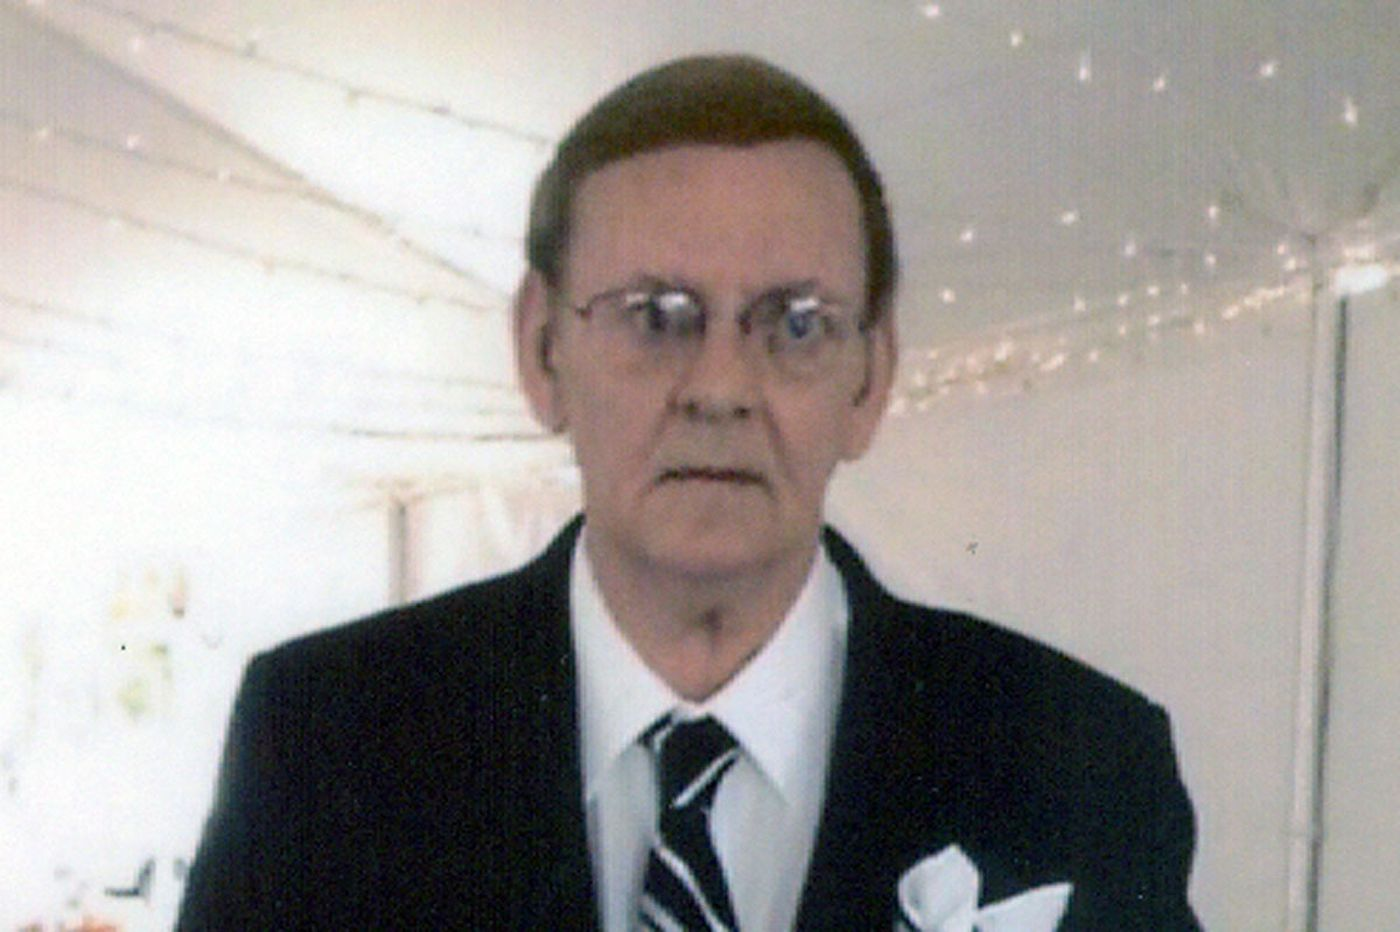 Joseph J. McGrane Jr., 70, pet crematory owner